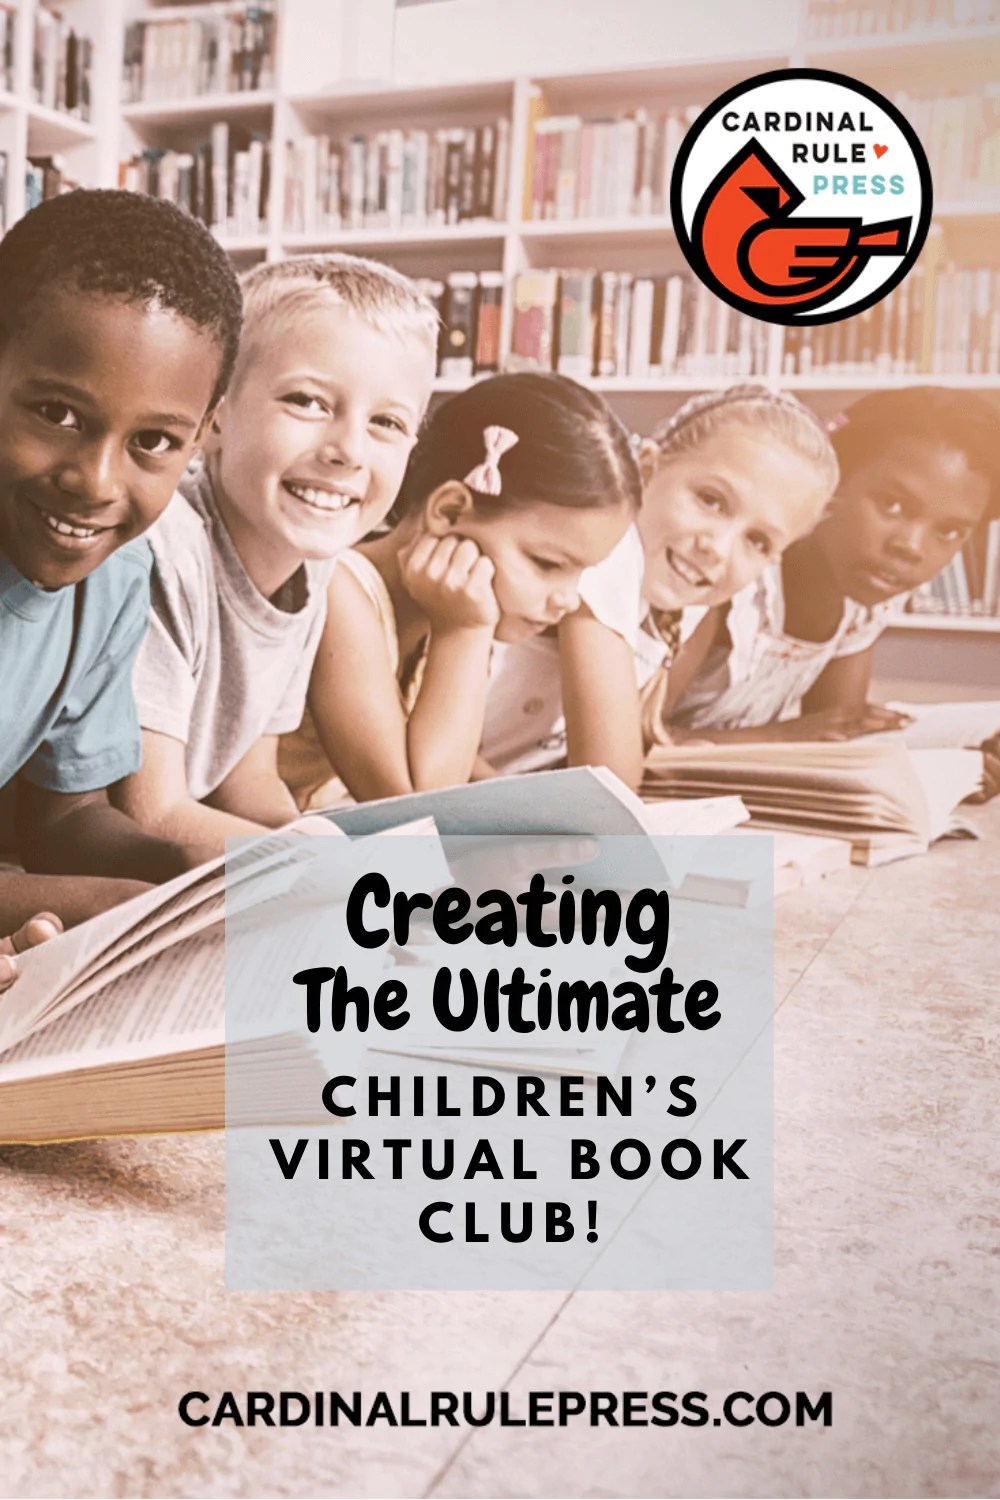 Creating the Ultimate Children's Virtual Book Club!